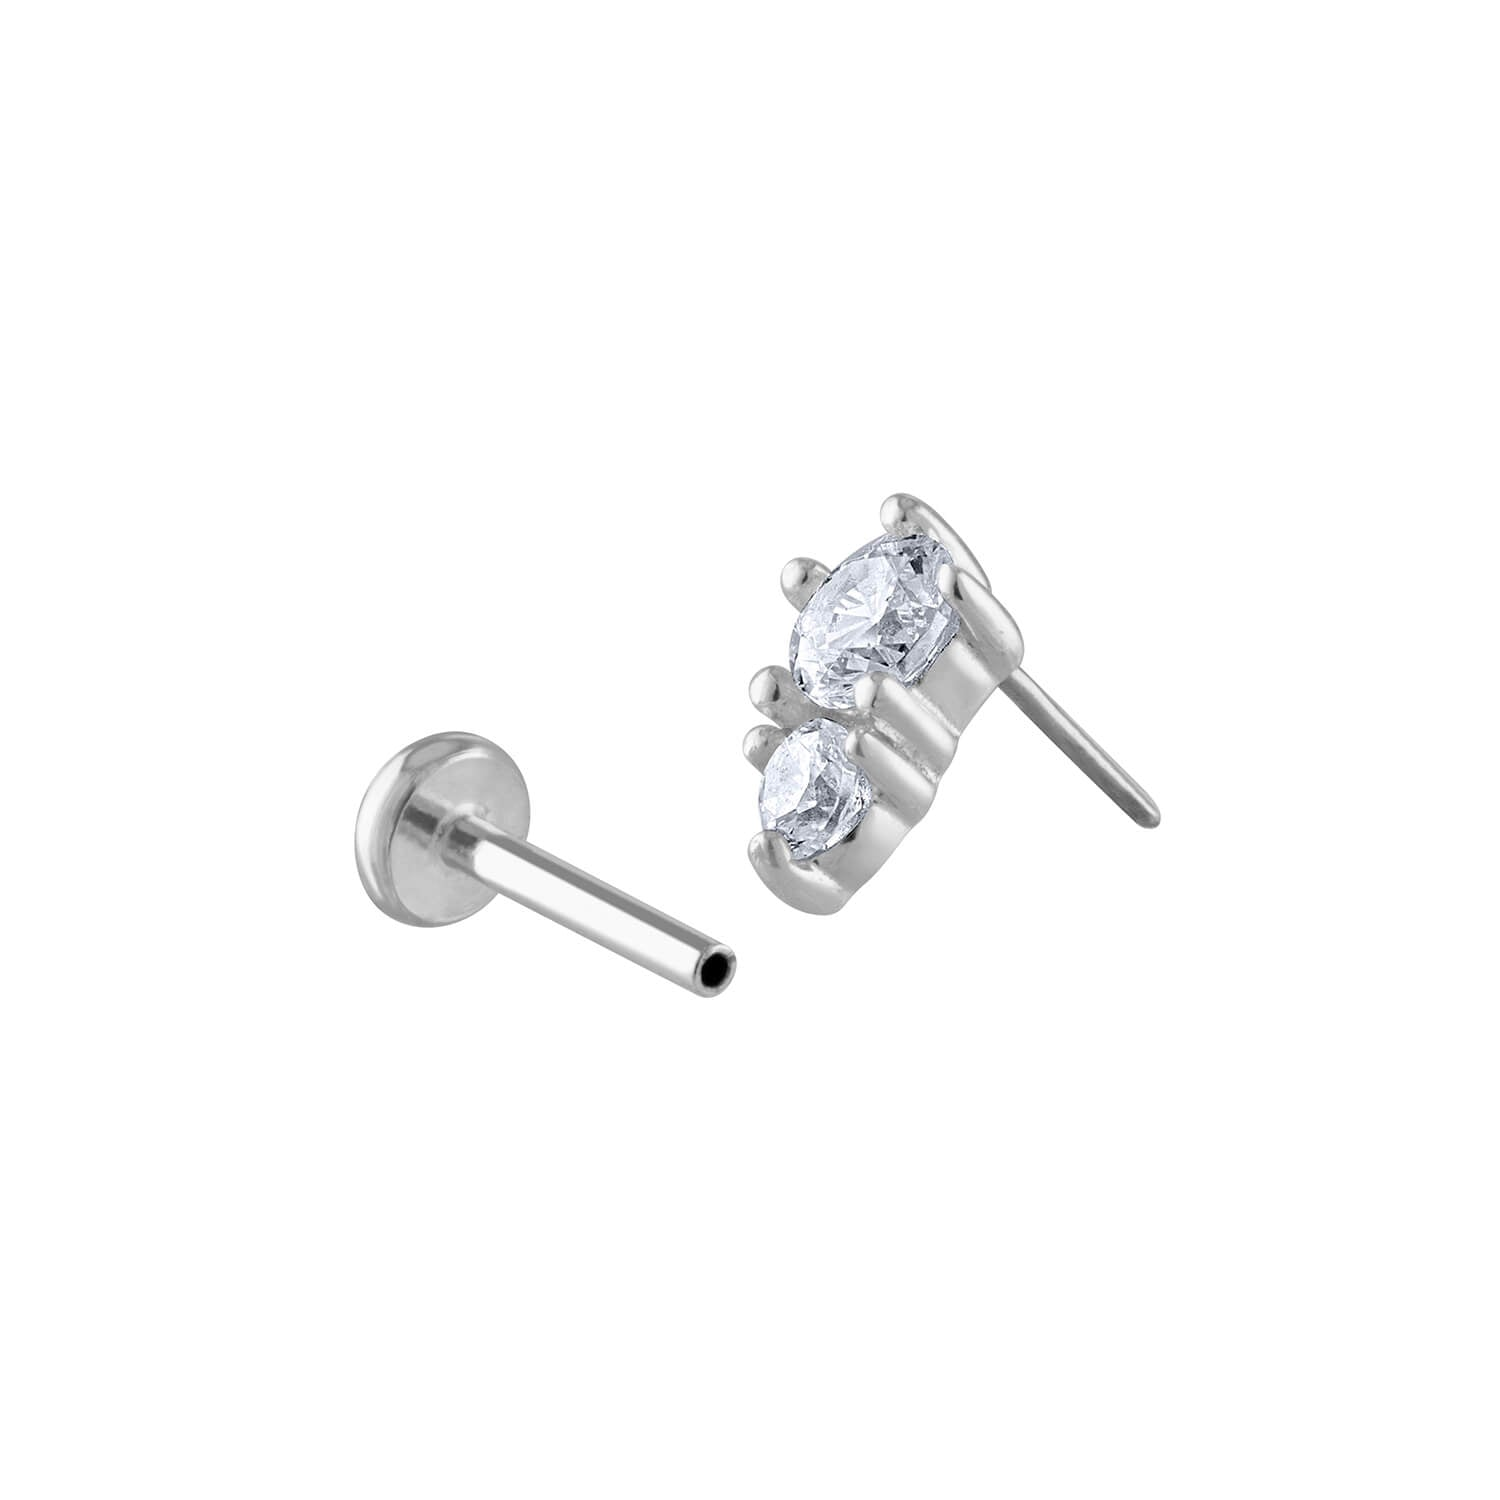 Gaia Push Pin Flat Back Earring in Silver